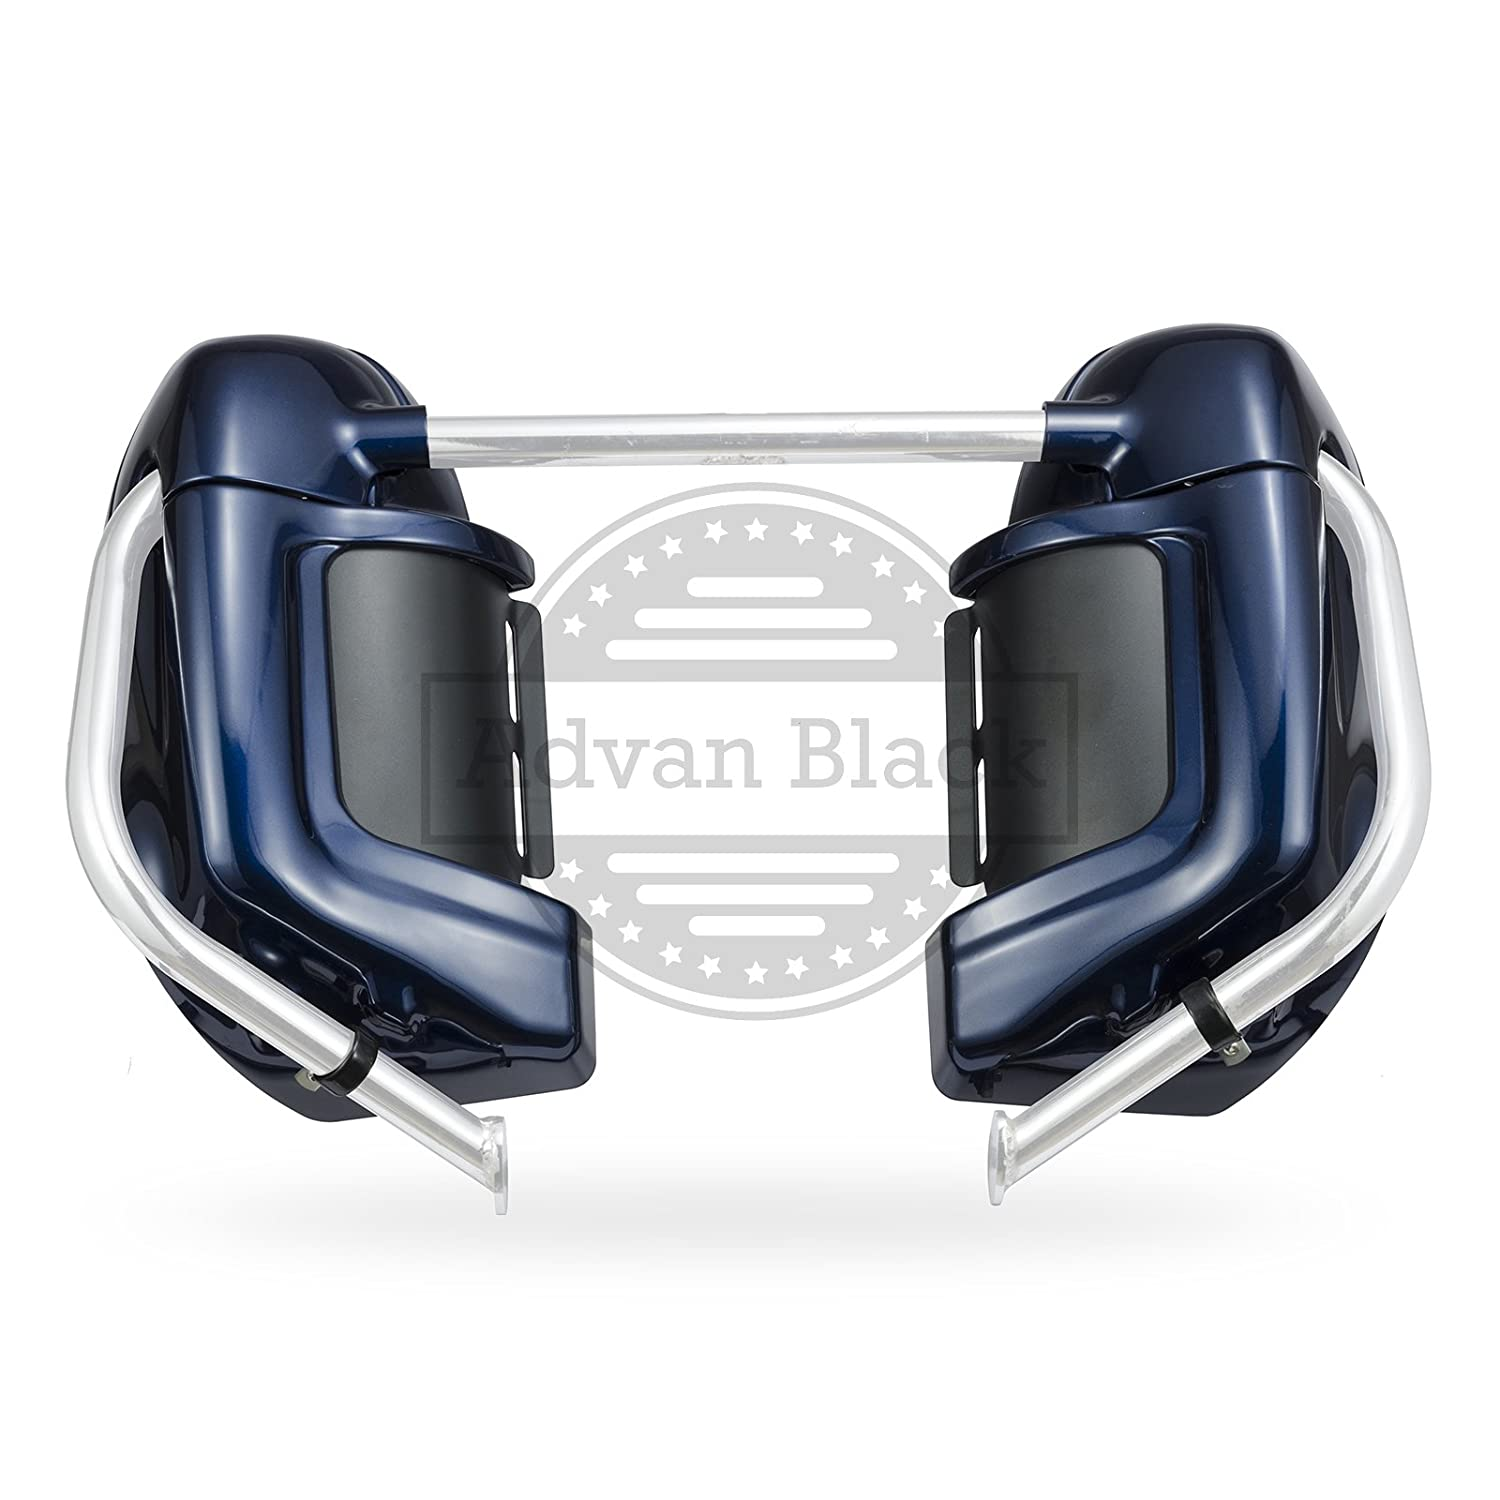 Superior Blue Pre-Rushmore Lower Vented Leg Fairing Kits Glove Box For 1983-2016 Harley Davidson Touring Road Glide Special